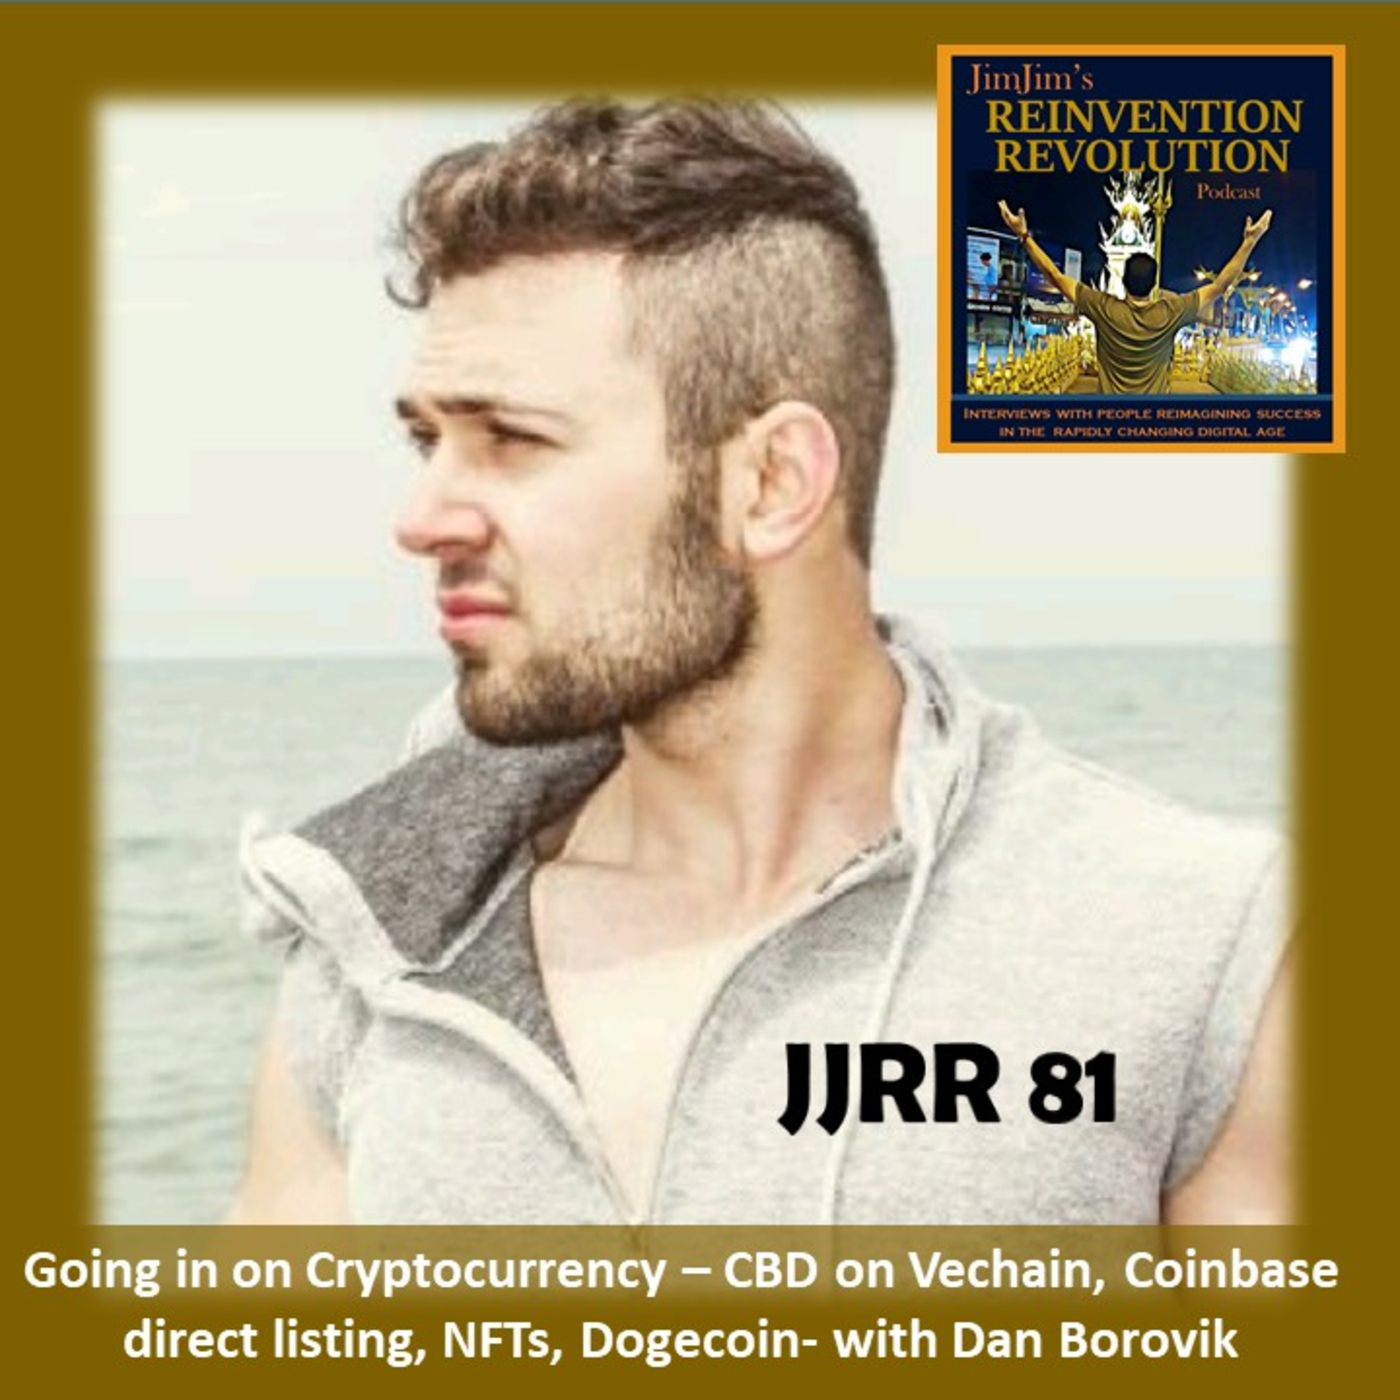 Read more about the article JJRR 81 Going in on Cryptocurrency – CBD on Vechain, Coinbase direct listing, NFTs, Dogecoin – with Dan Borovik